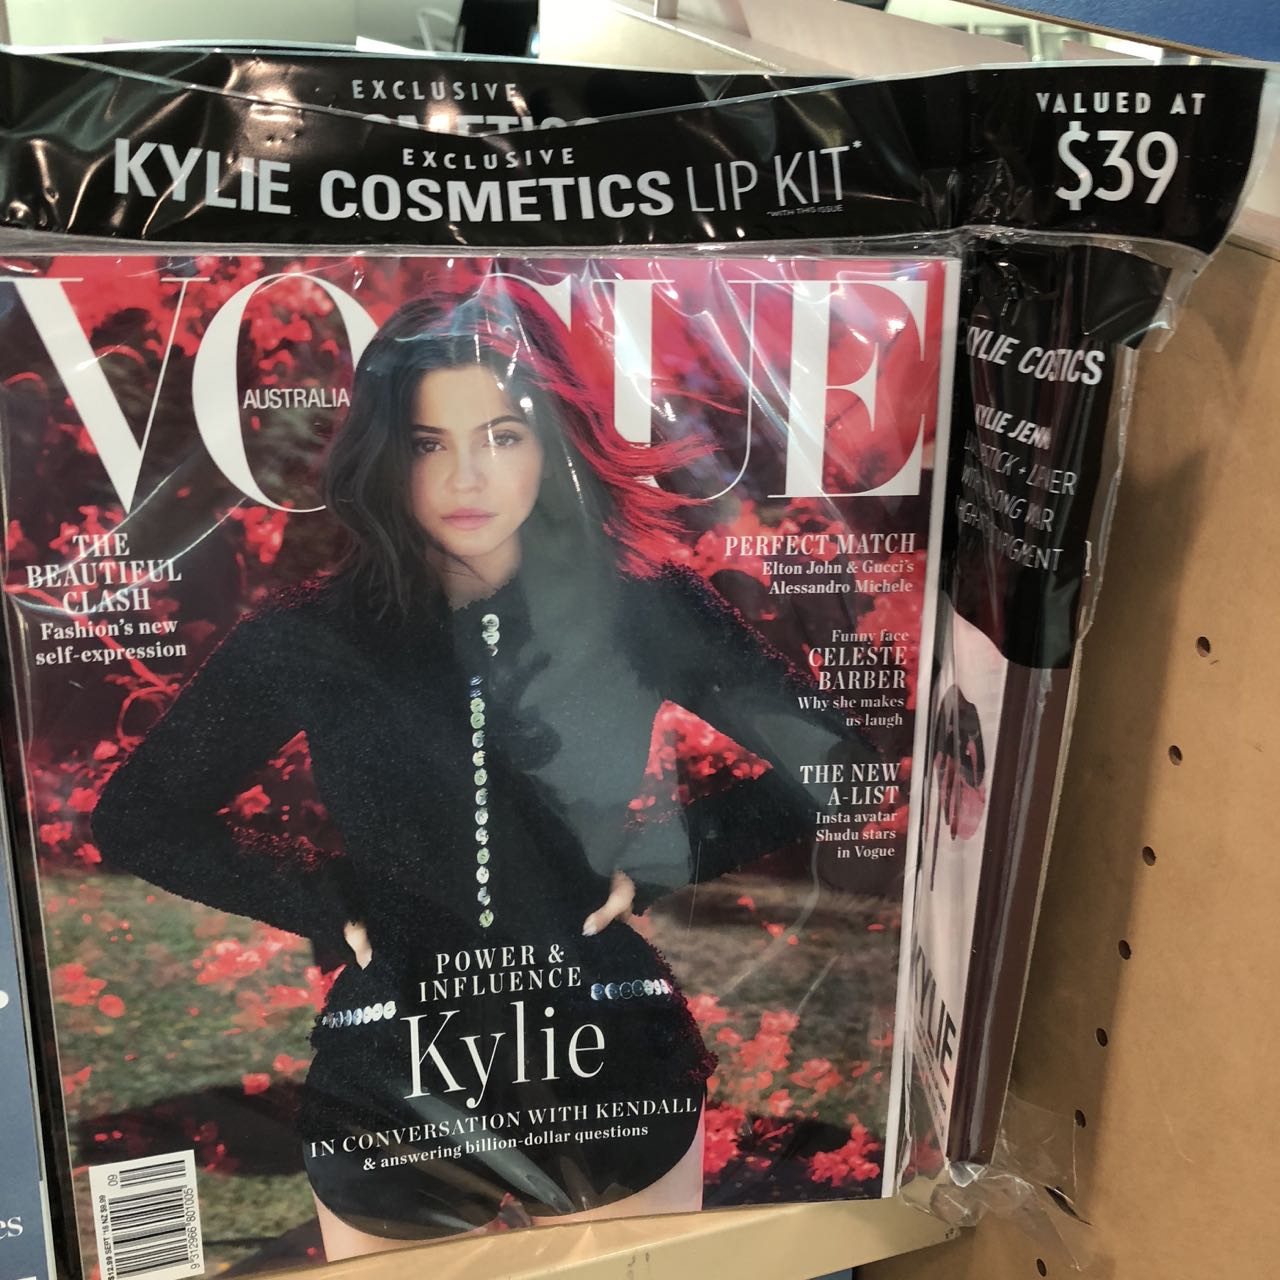 The Kylie Jenner Vogue is still available